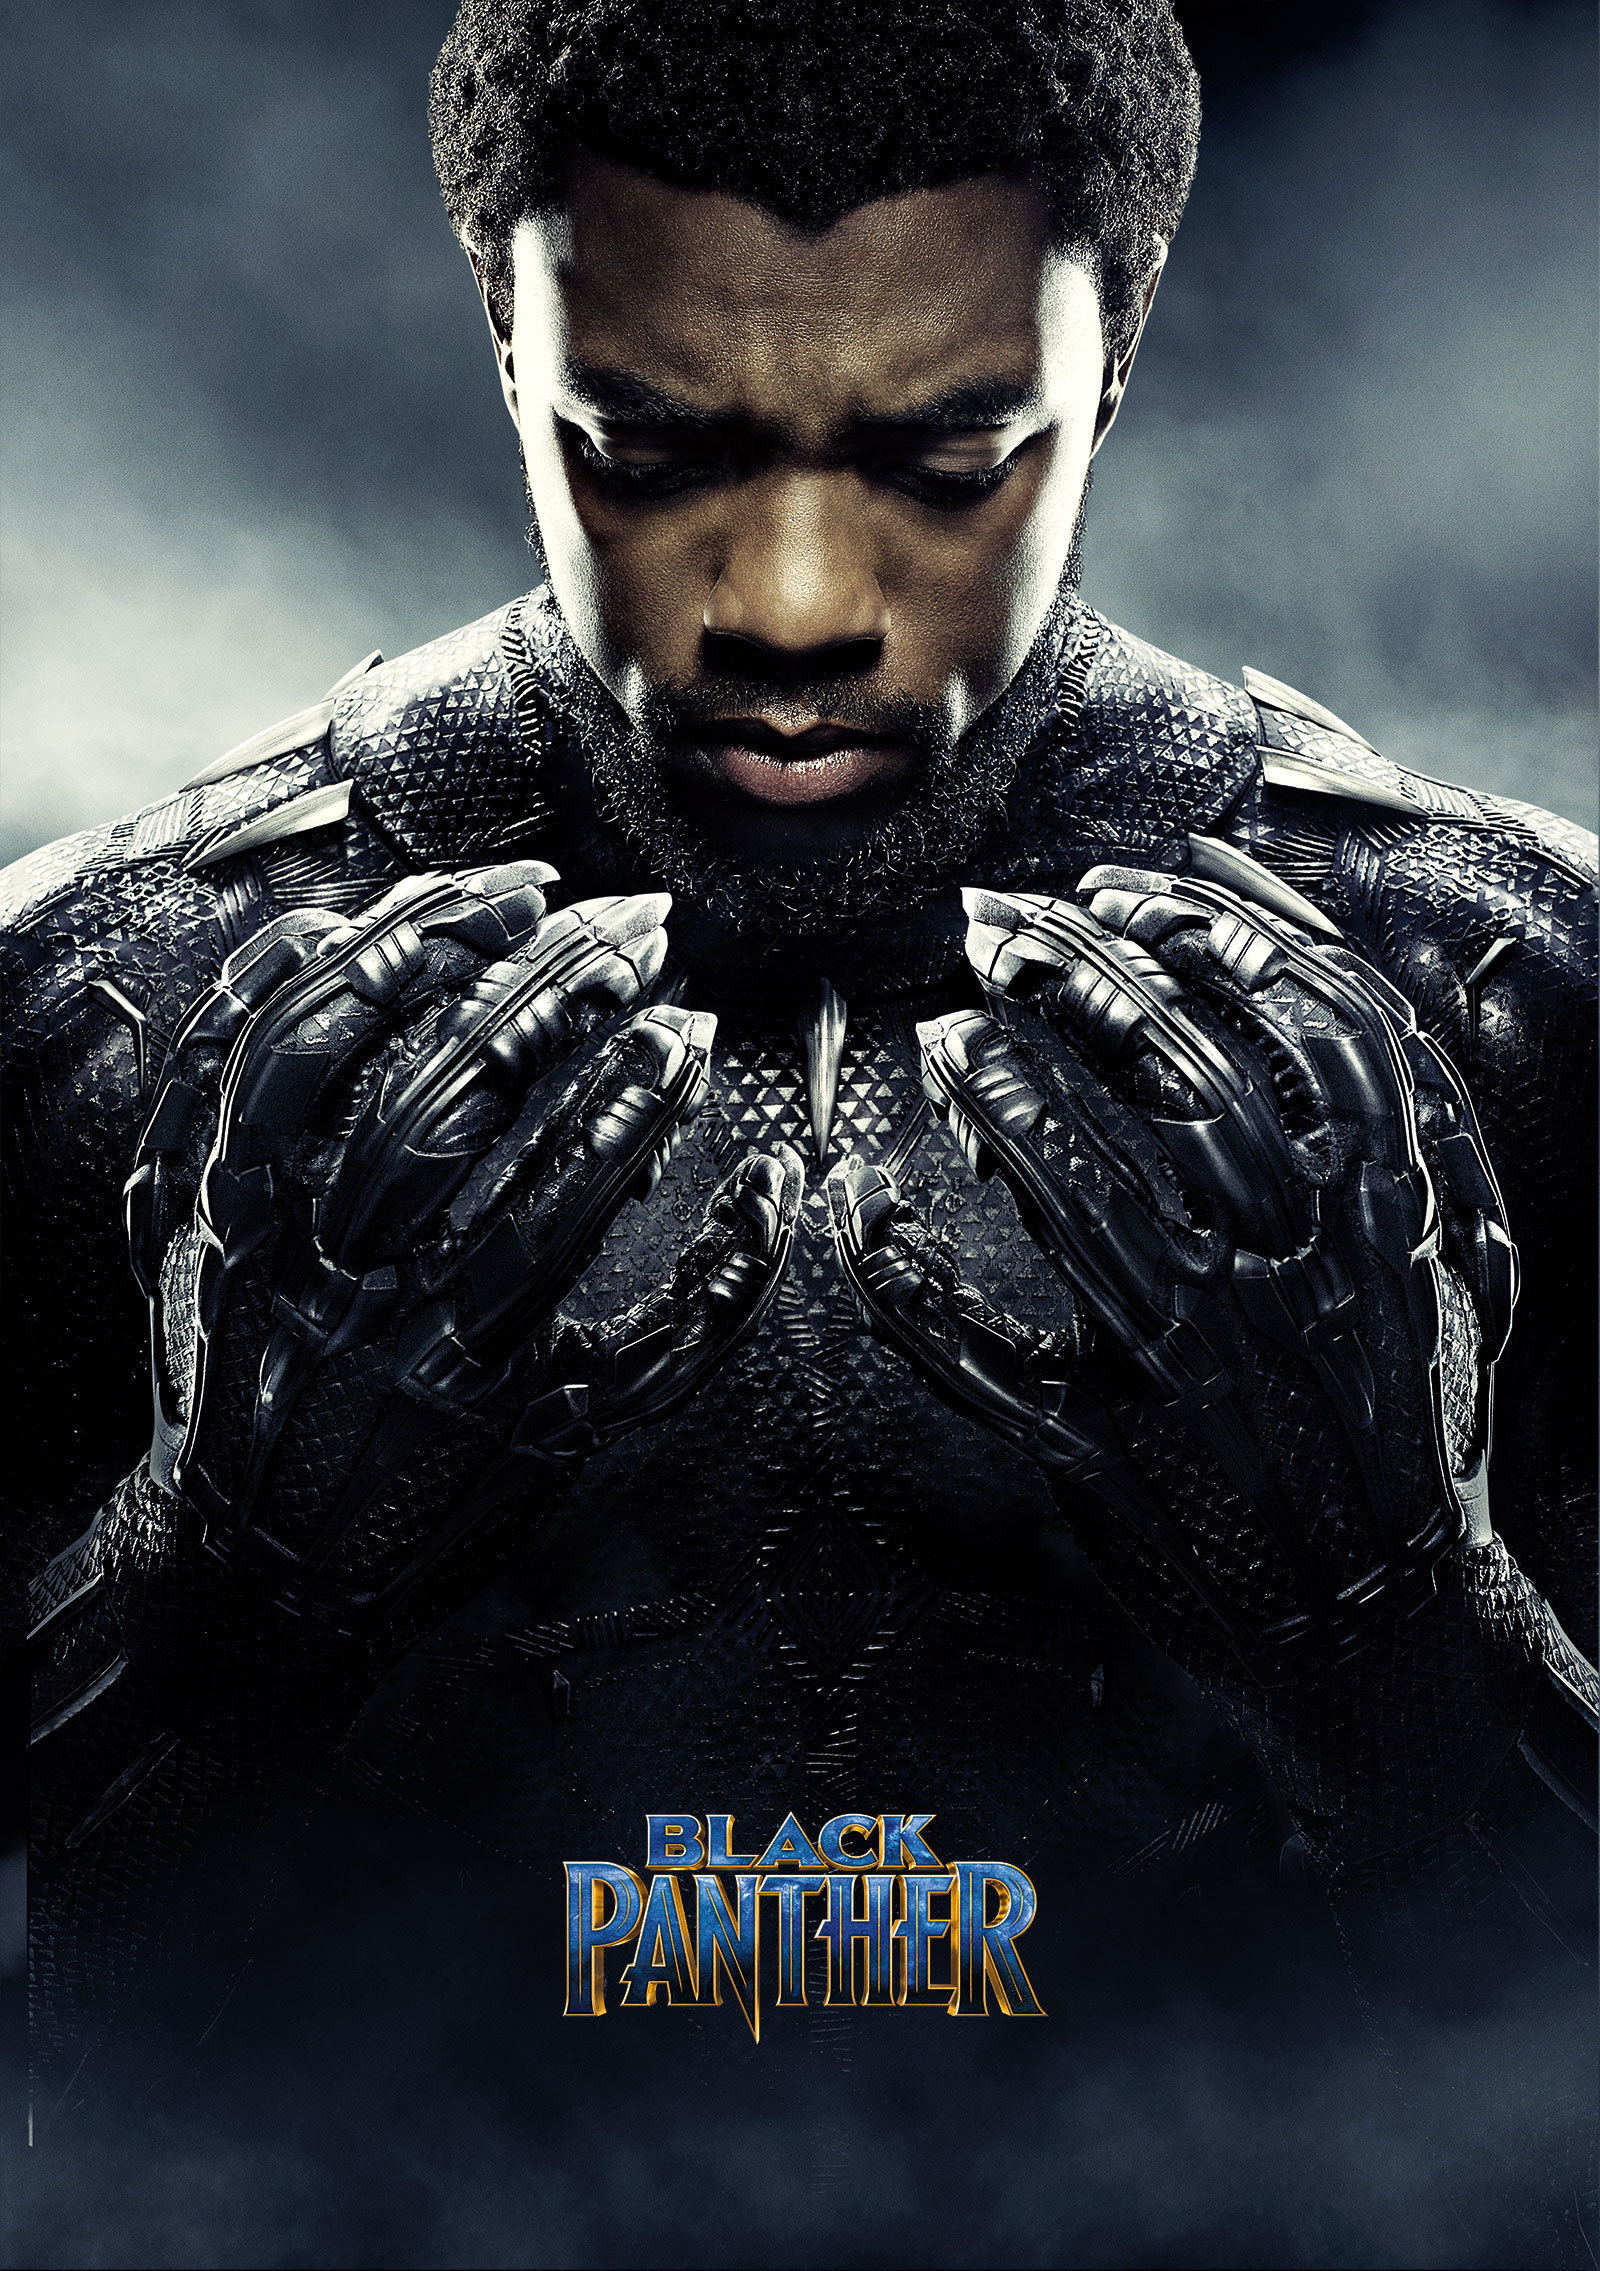 Black Panther - Characters - Panther